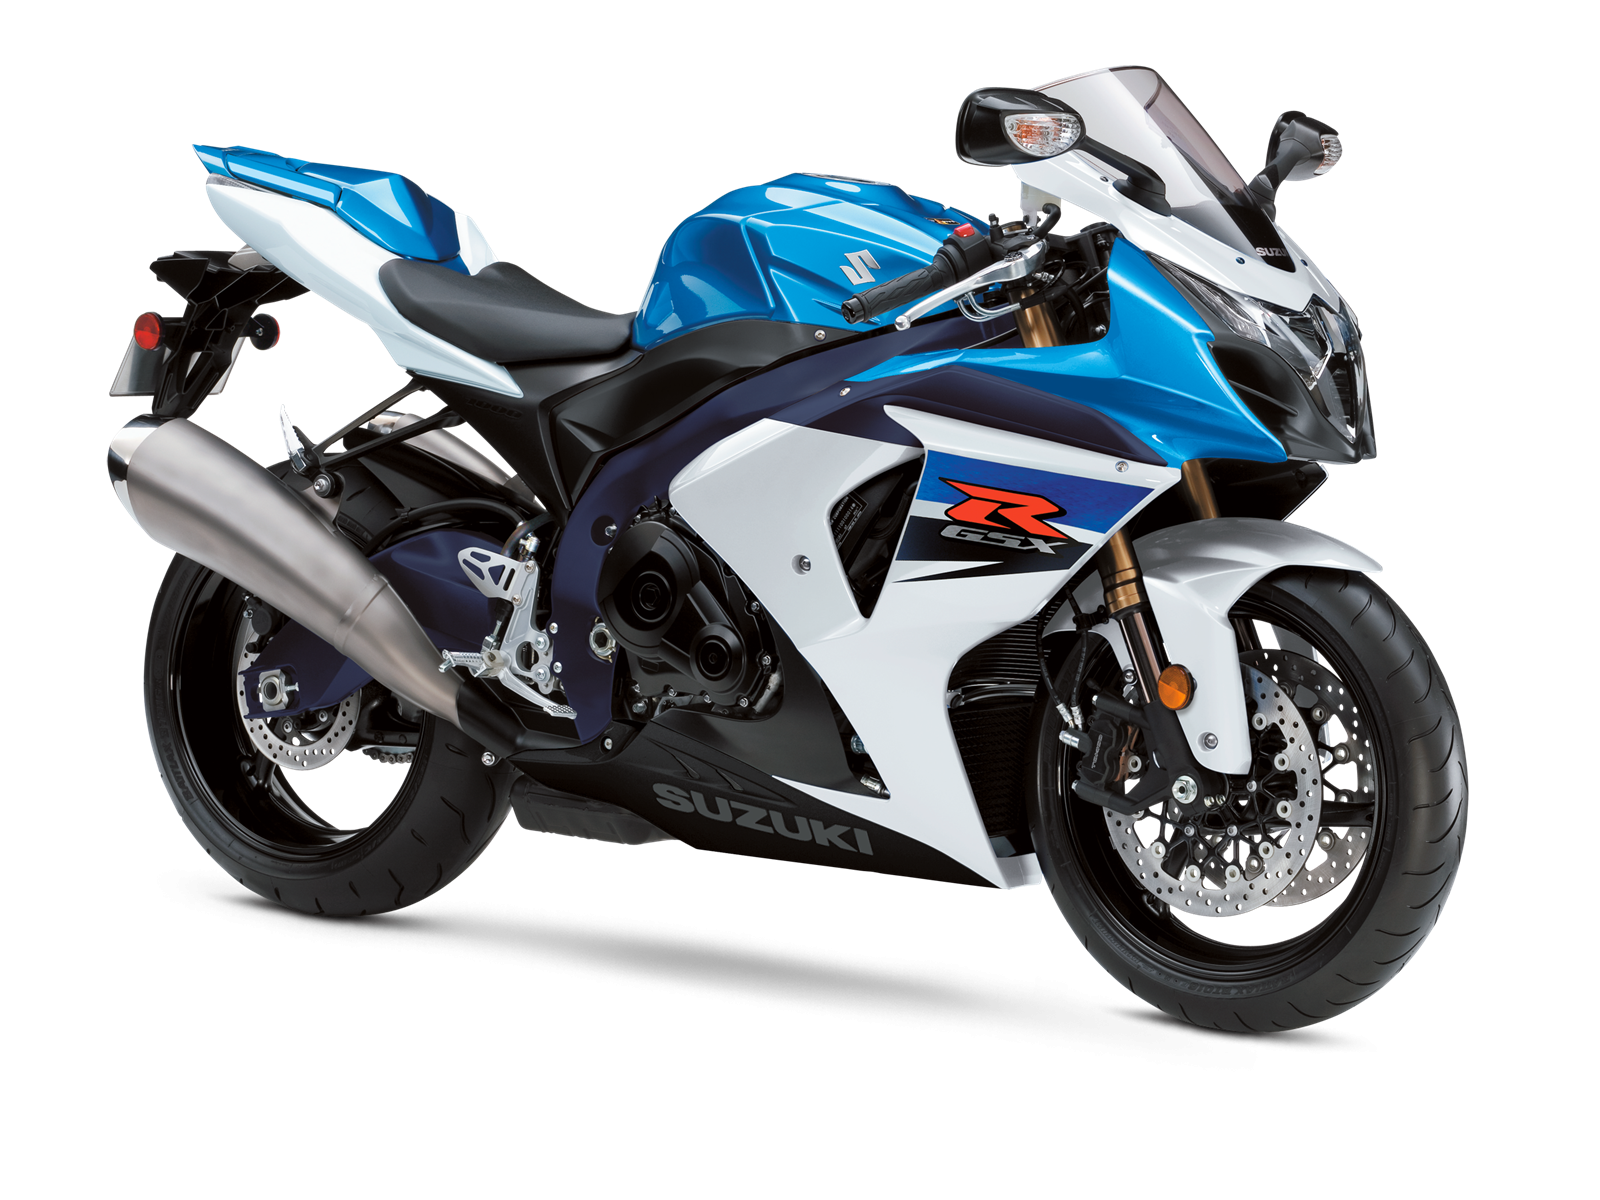 Bmw motorcycle png. Images free pictures download